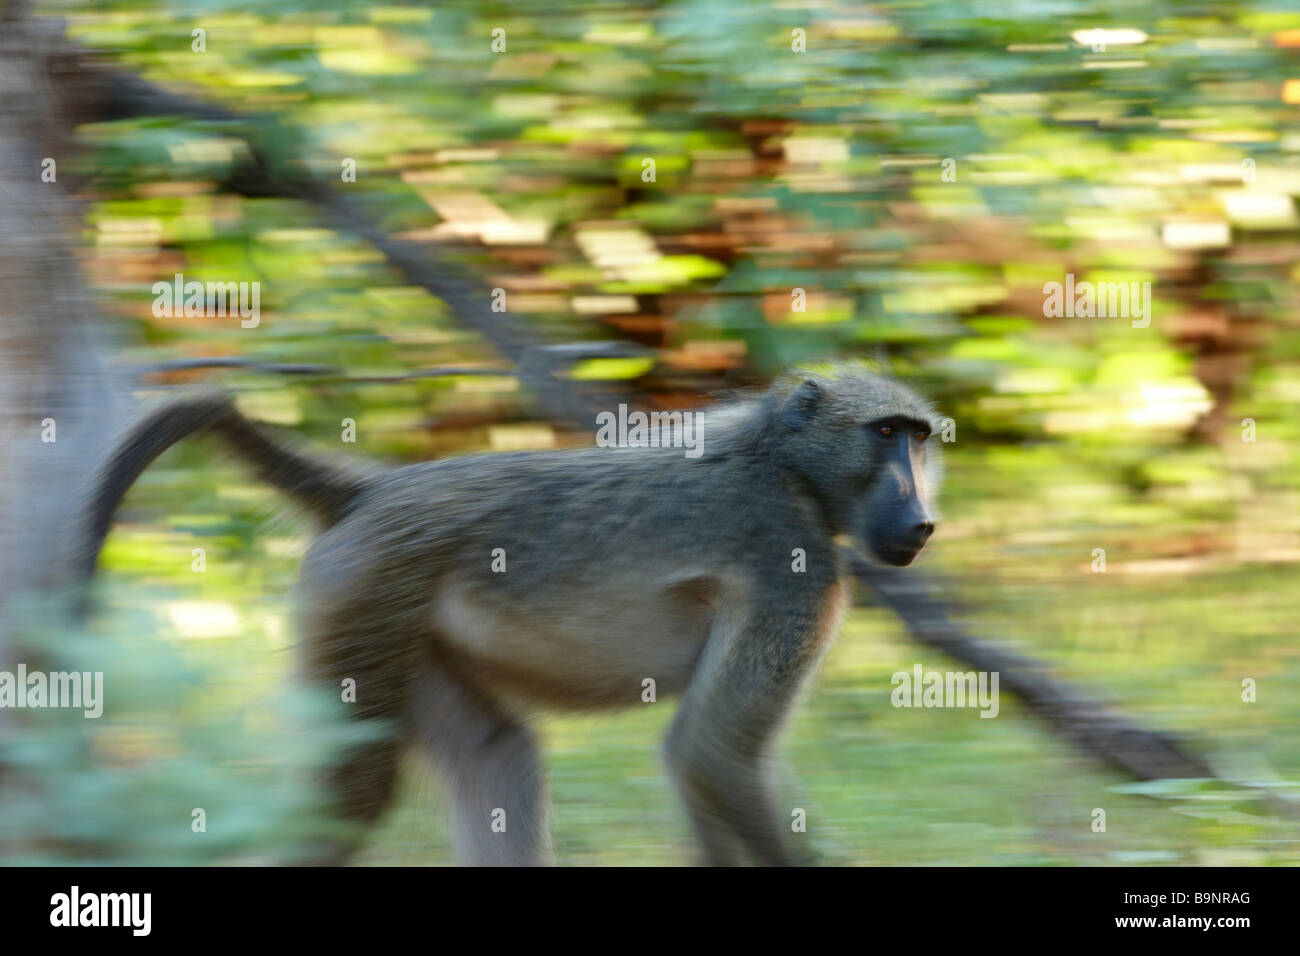 Chacma baboon on the move in the bush, Kruger National Park, South Africa - Stock Image